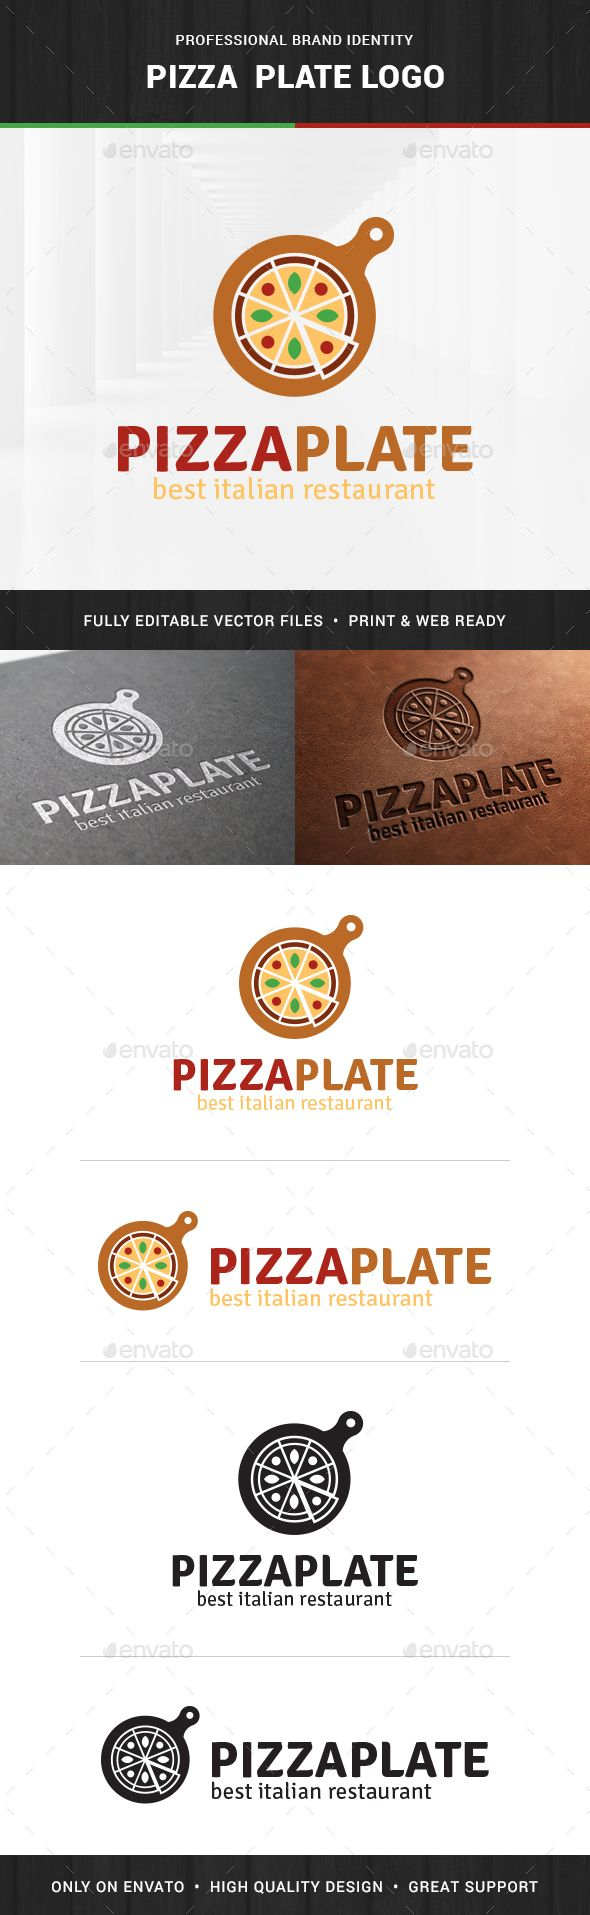 The Pizza Plate Logo Template A professional and modern pizza logo. All elements are fully vector and can be used for both print a